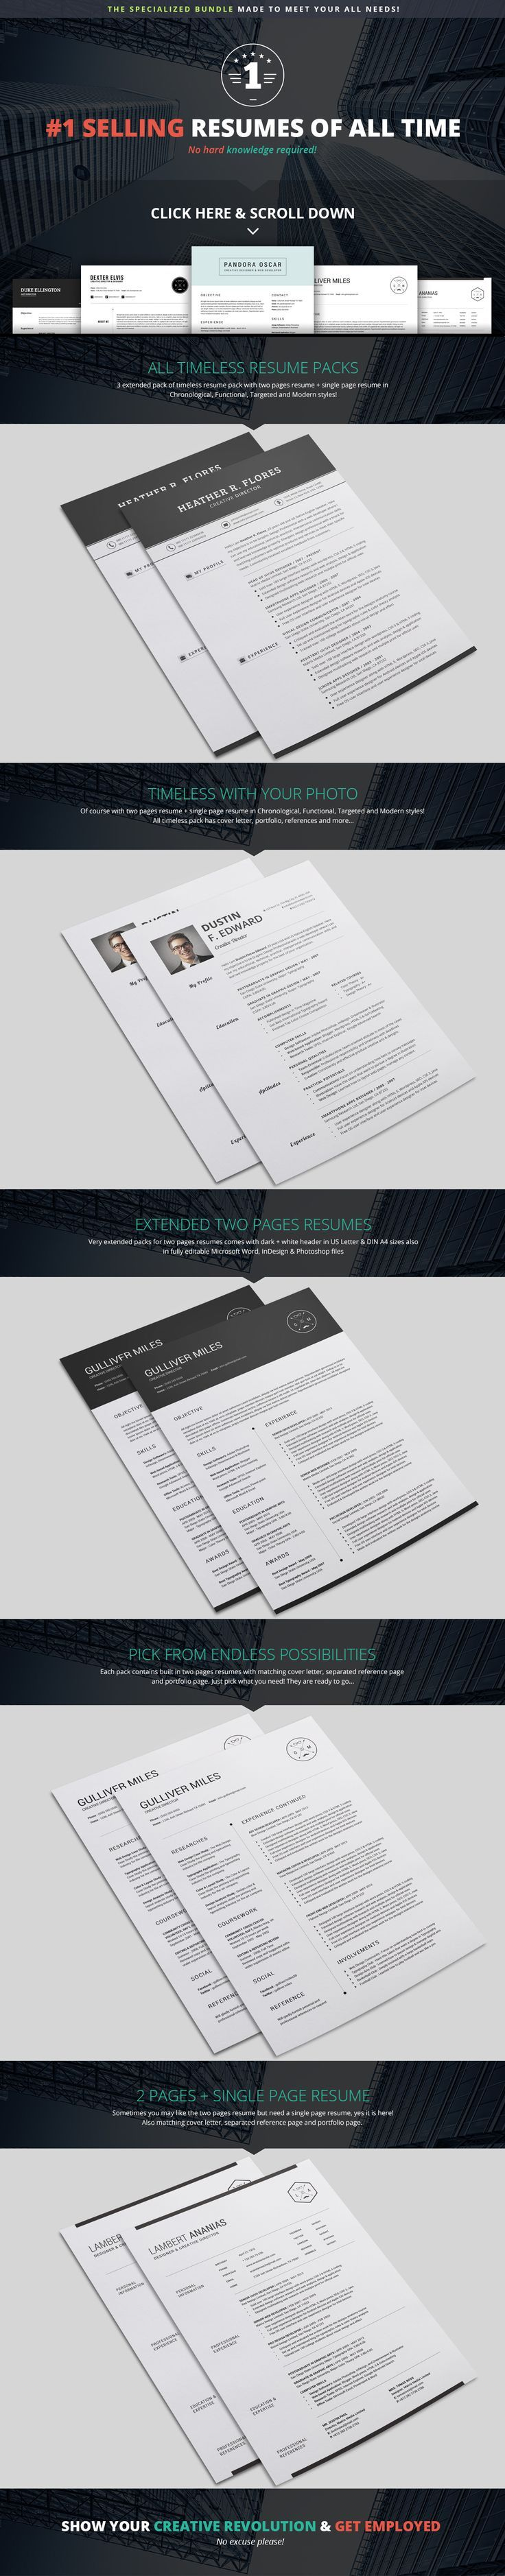 The best resumes at best price is here, you will get all types of #resume templates in three formats Microsoft word, Photoshop and InDesign…